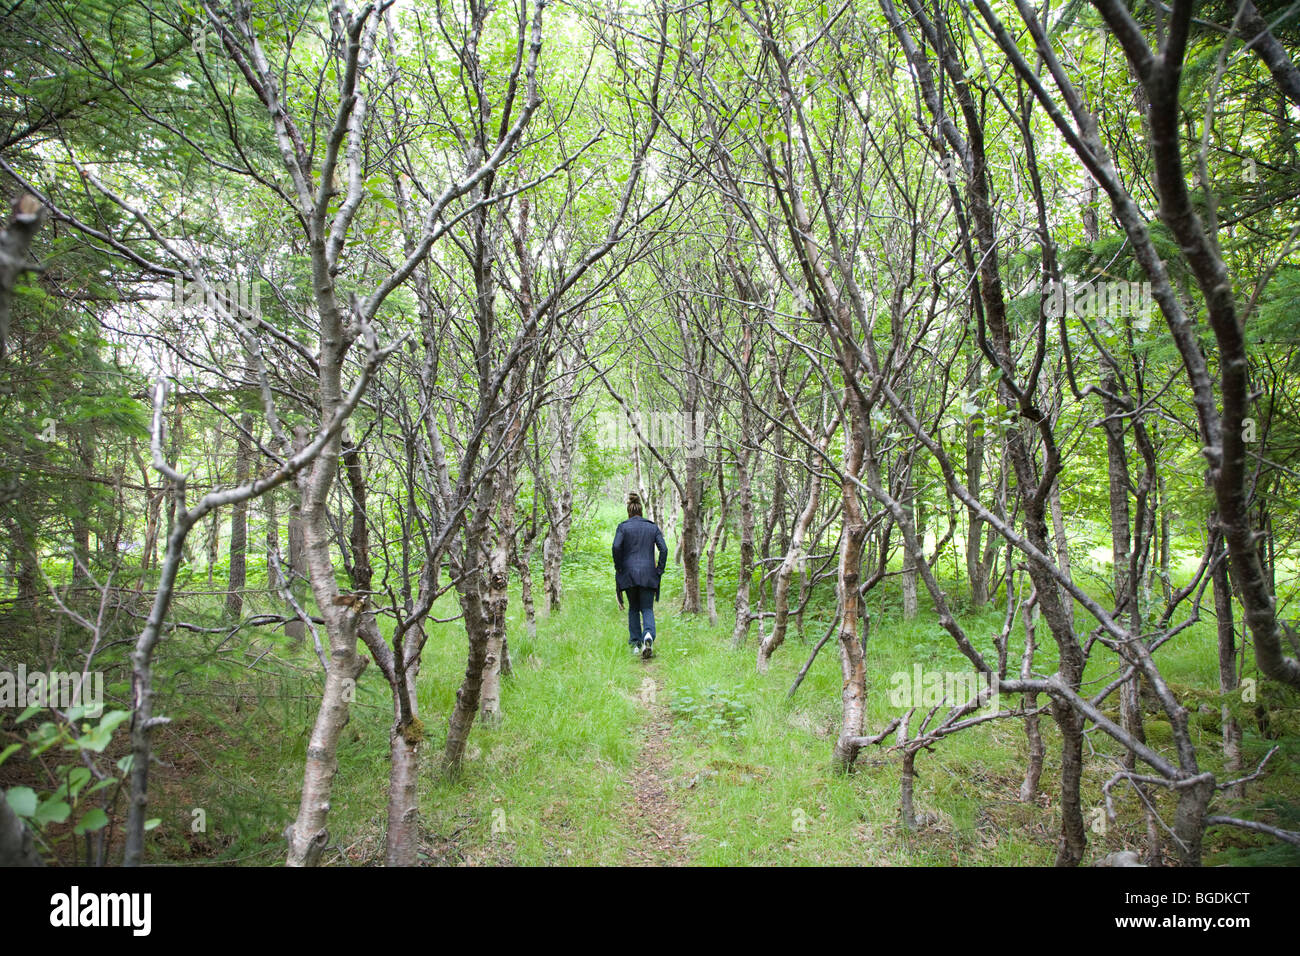 Woman walking in forest. Iceland. - Stock Image